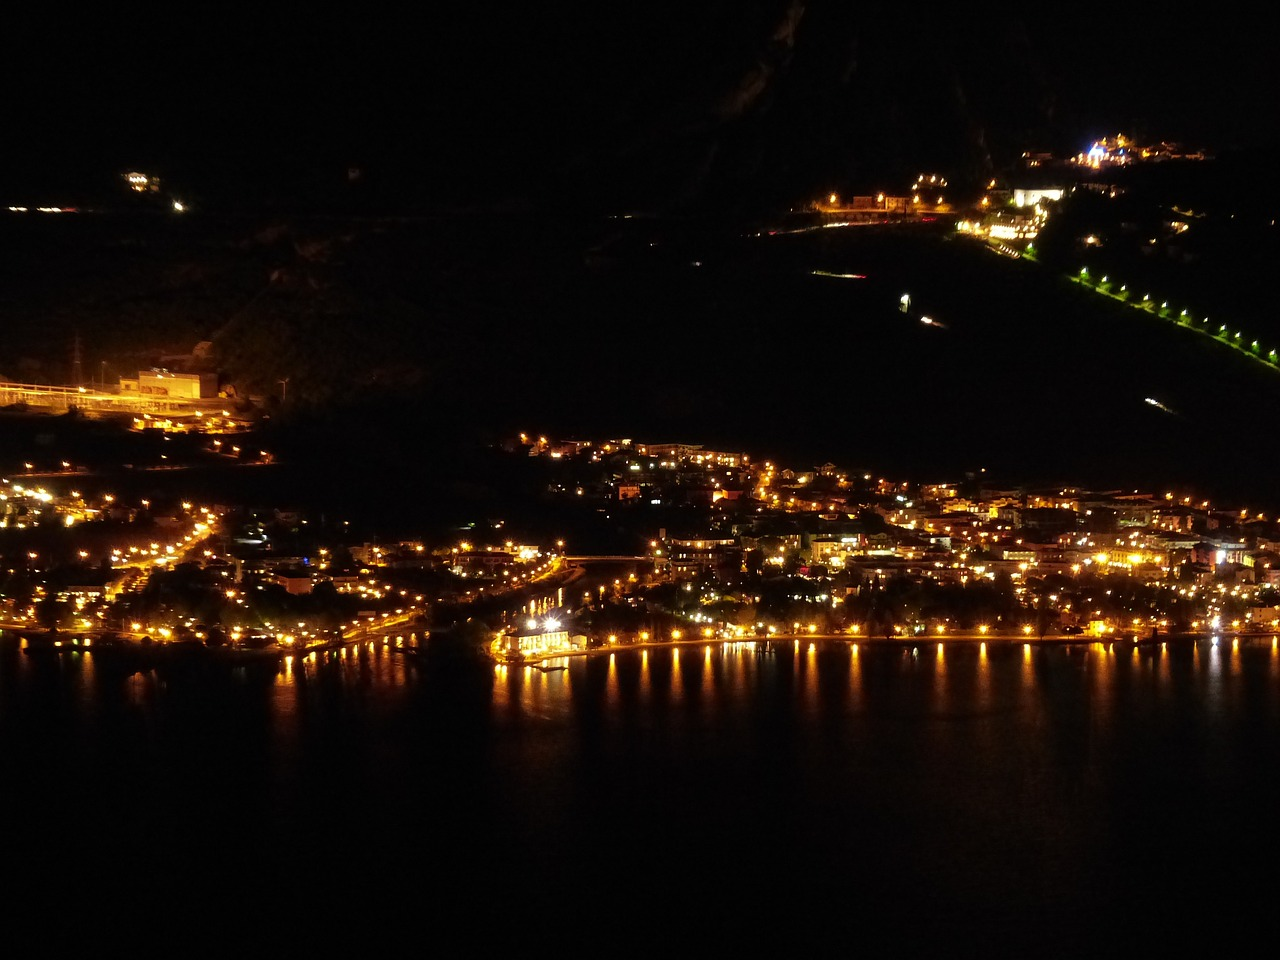 torbole at night coast line free photo